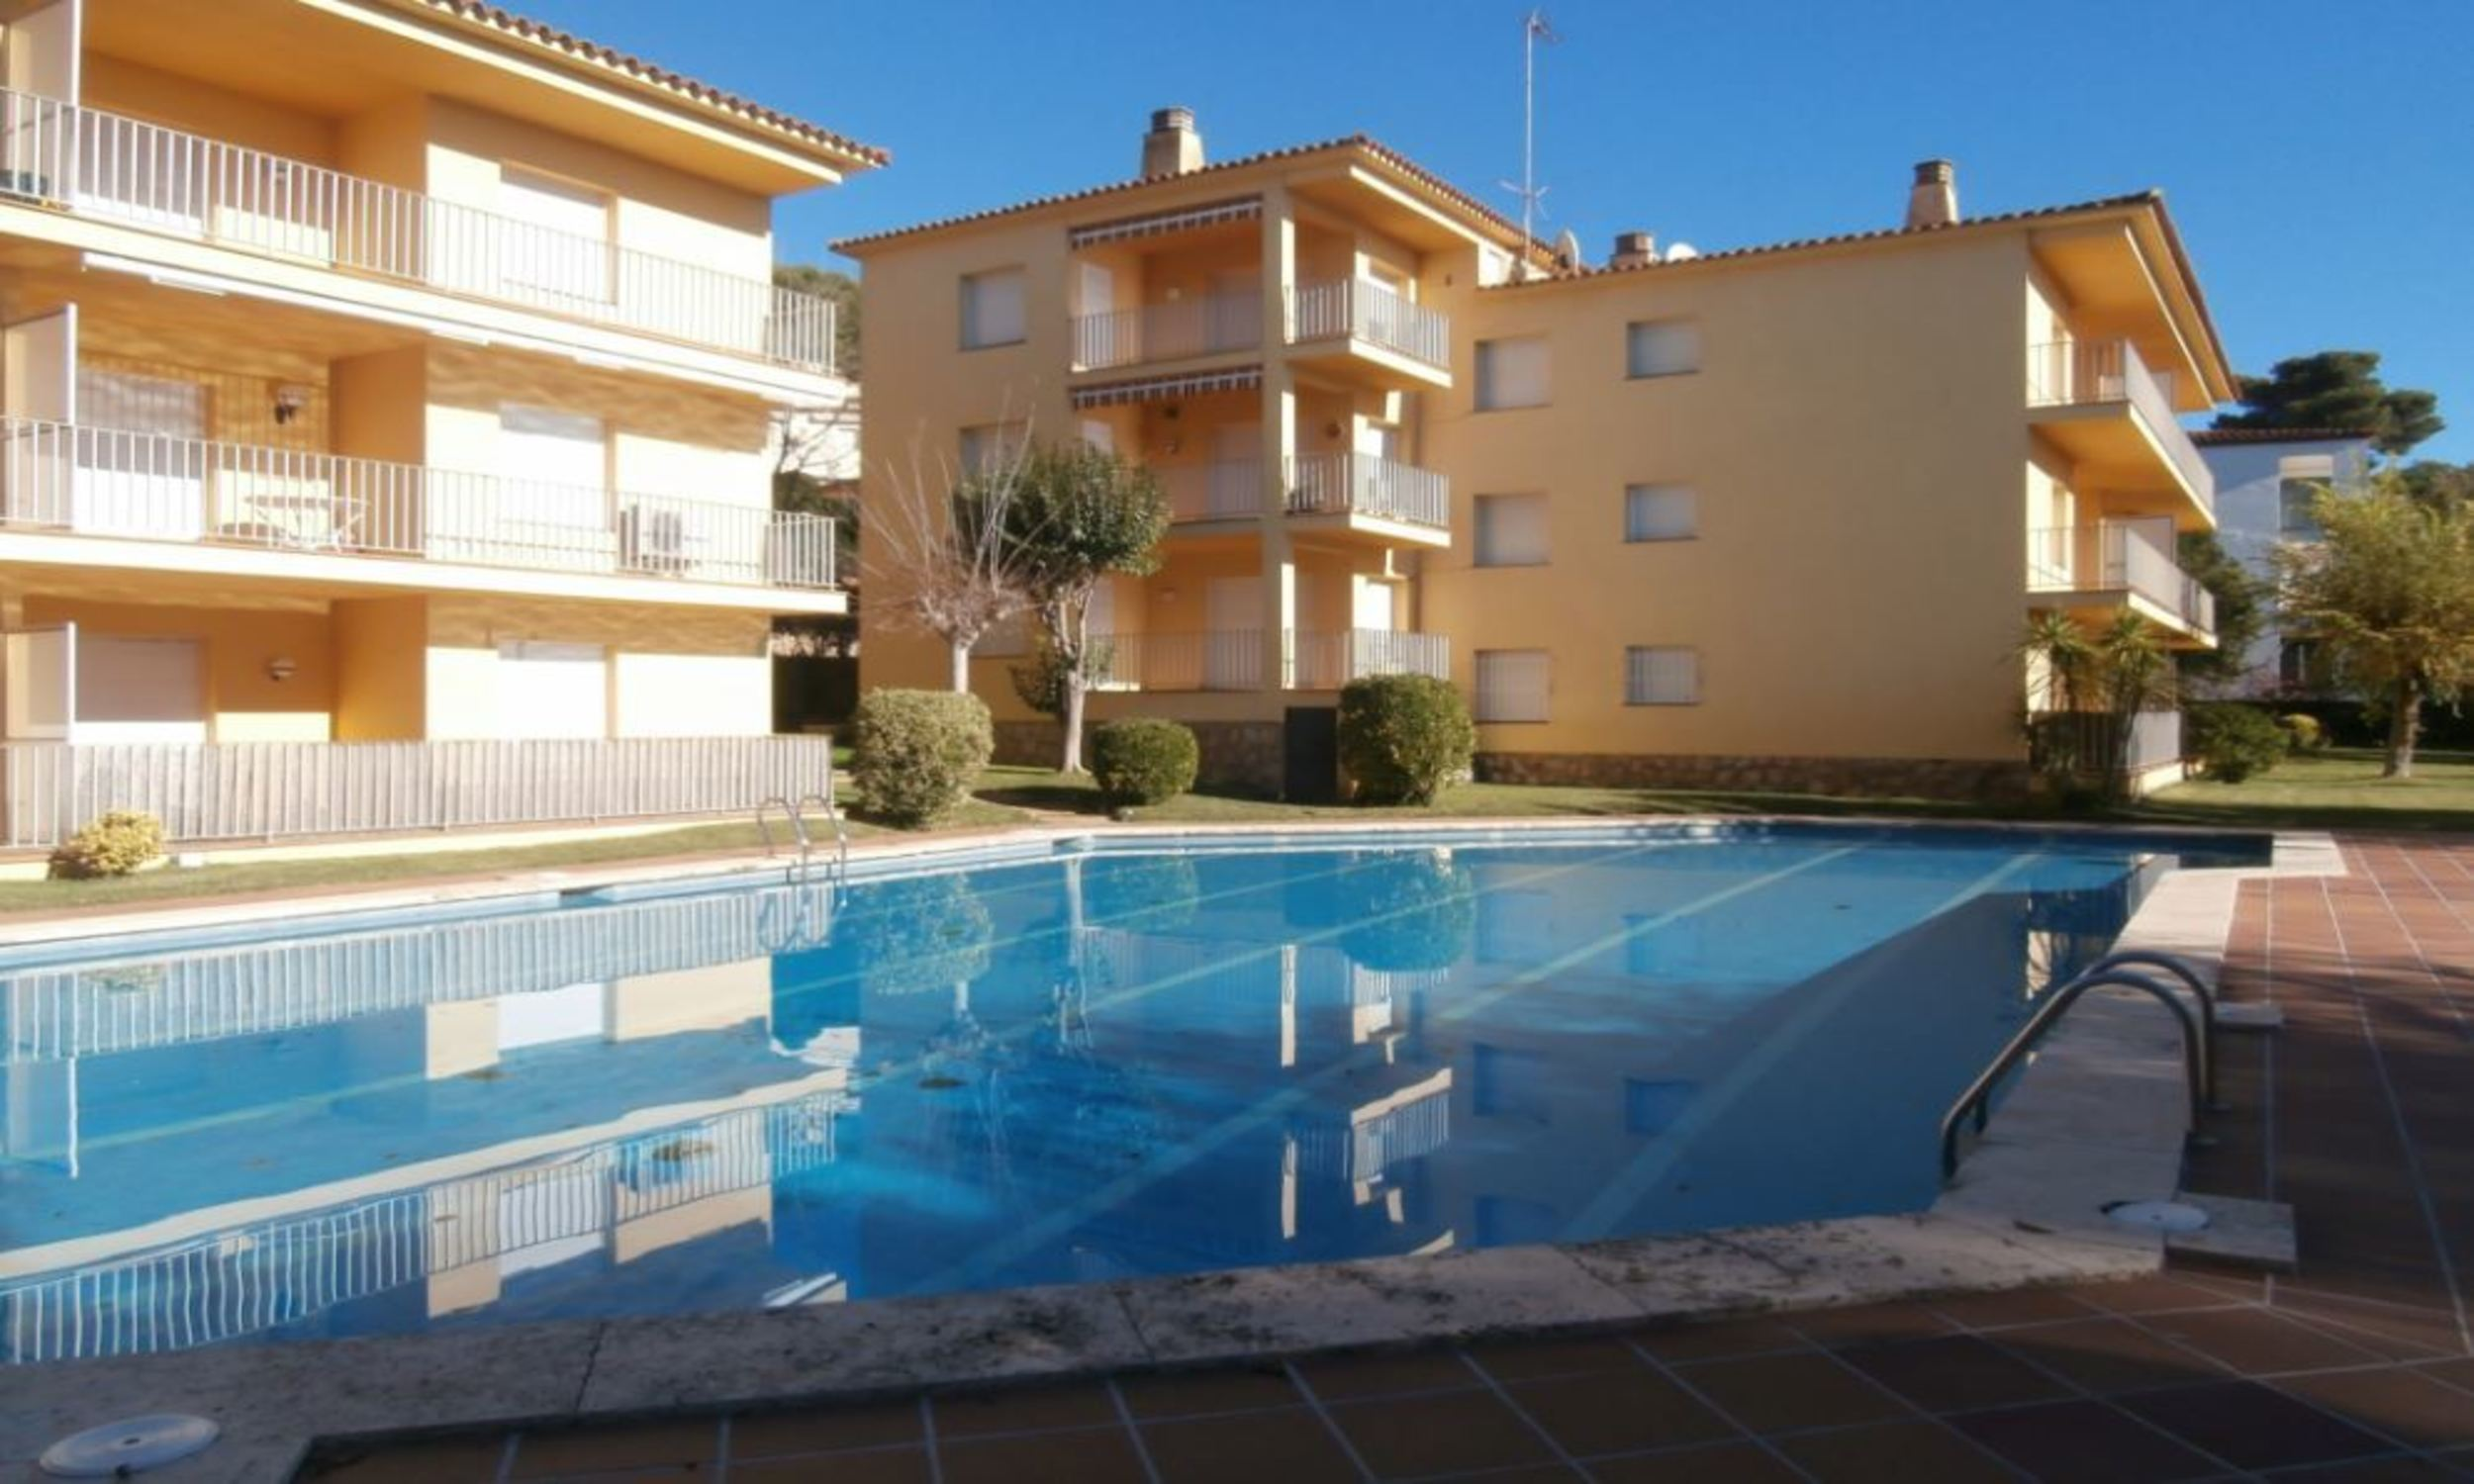 Apartment - 2 Bedrooms with Pool (young people group not allowed) - 104846